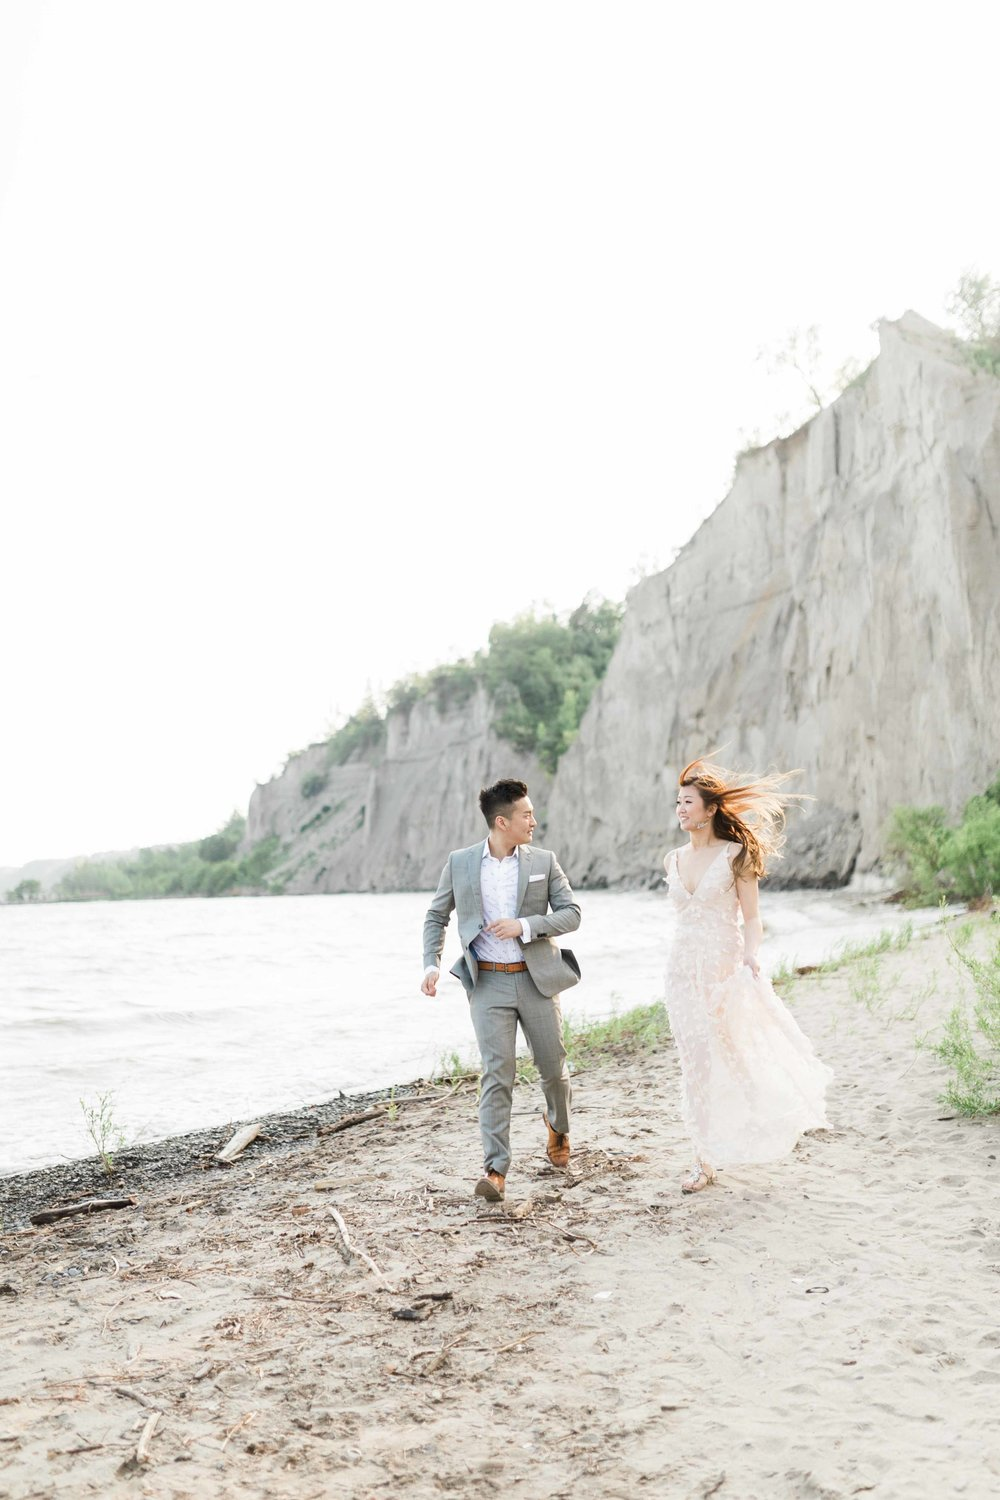 Cari Zhu Fine Art Photographer - Scarborough Bluffs Engagement Session-16.jpg